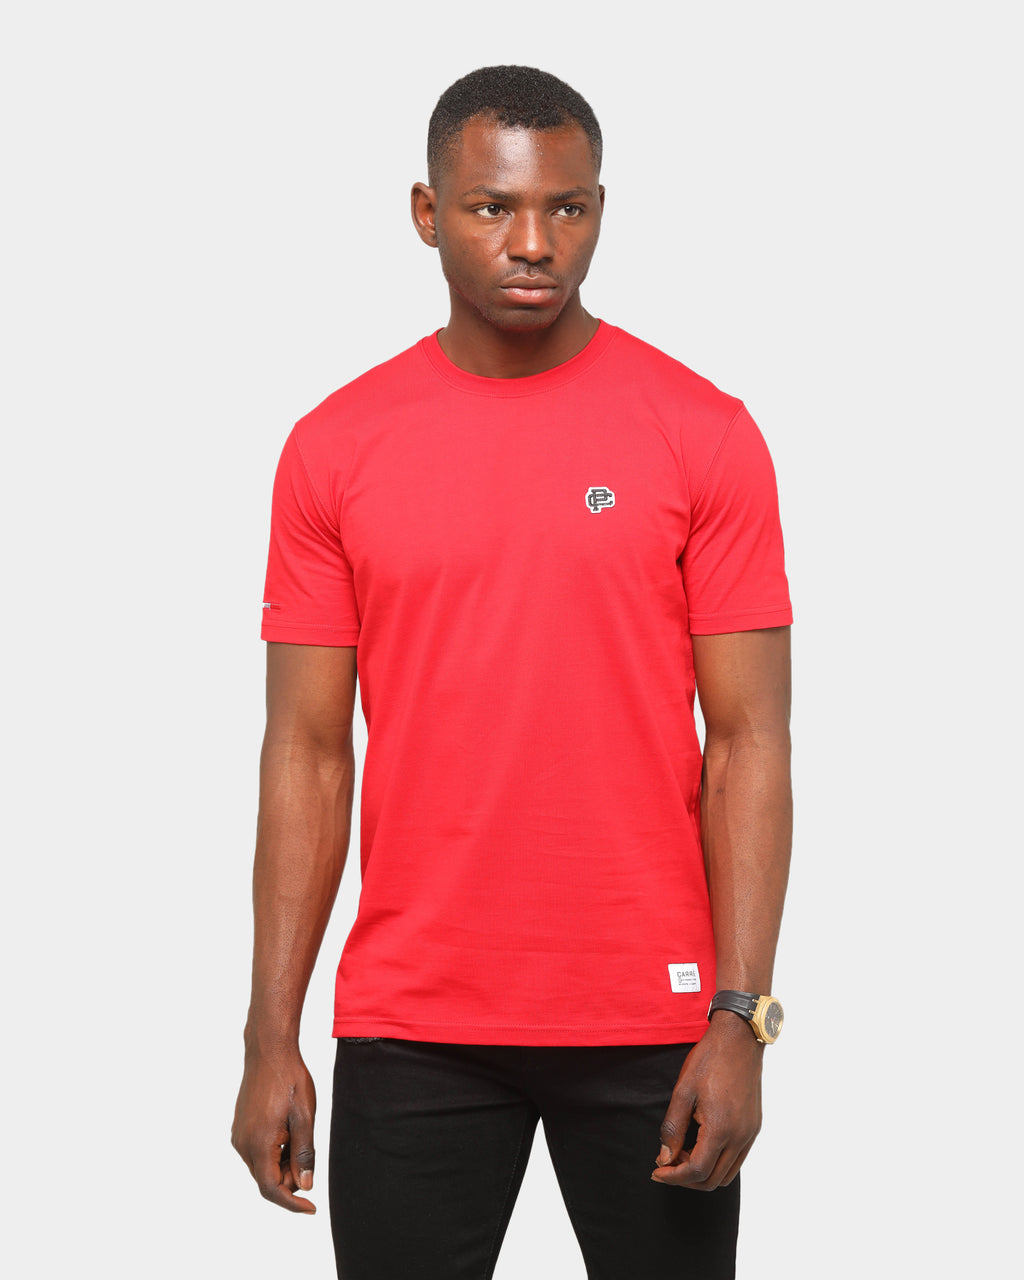 Carre Mono Classique Short-Sleeve T-Shirt Red